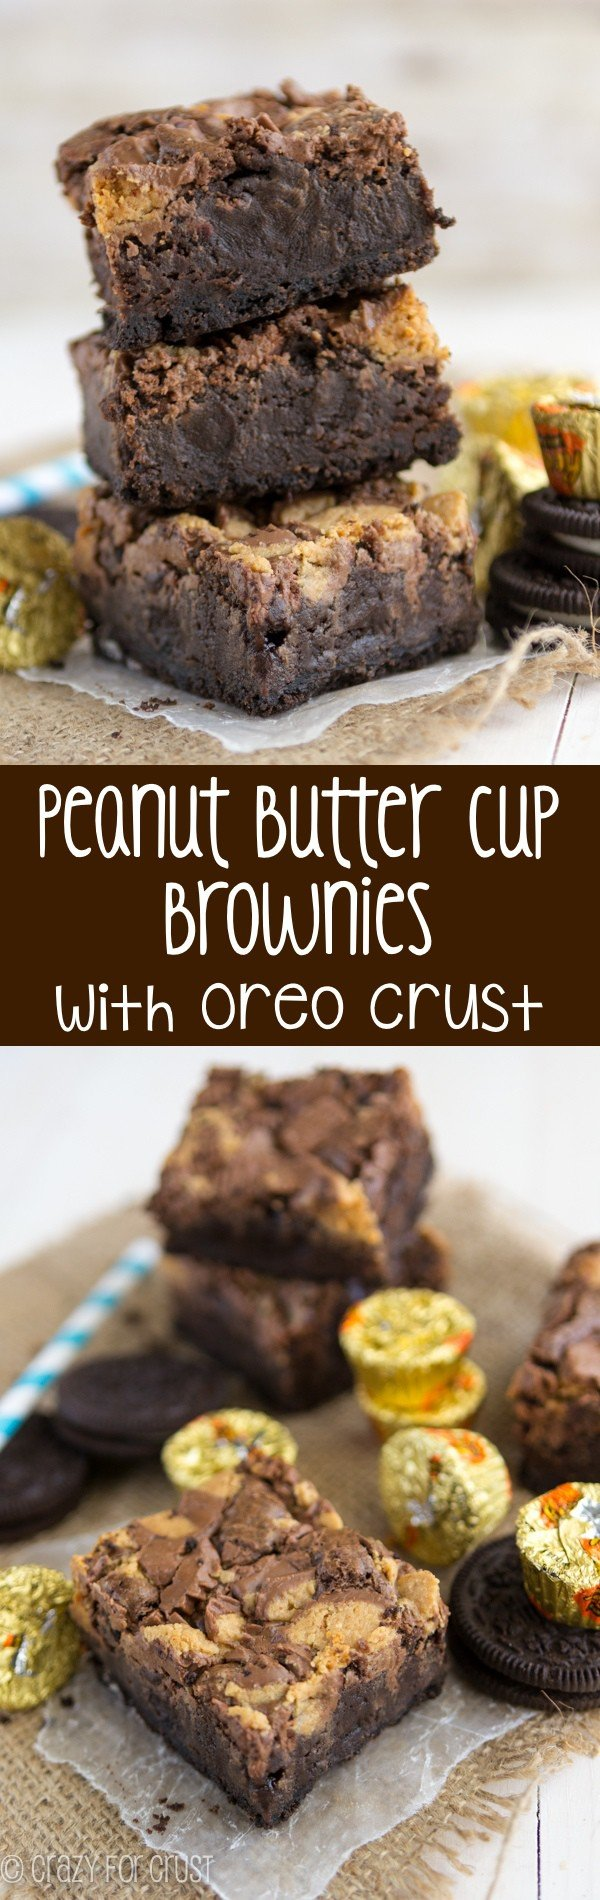 These are the ULTIMATE brownies! Peanut Butter Cup Brownies with an Oreo Crust! 3 levels of decadent chocolate!